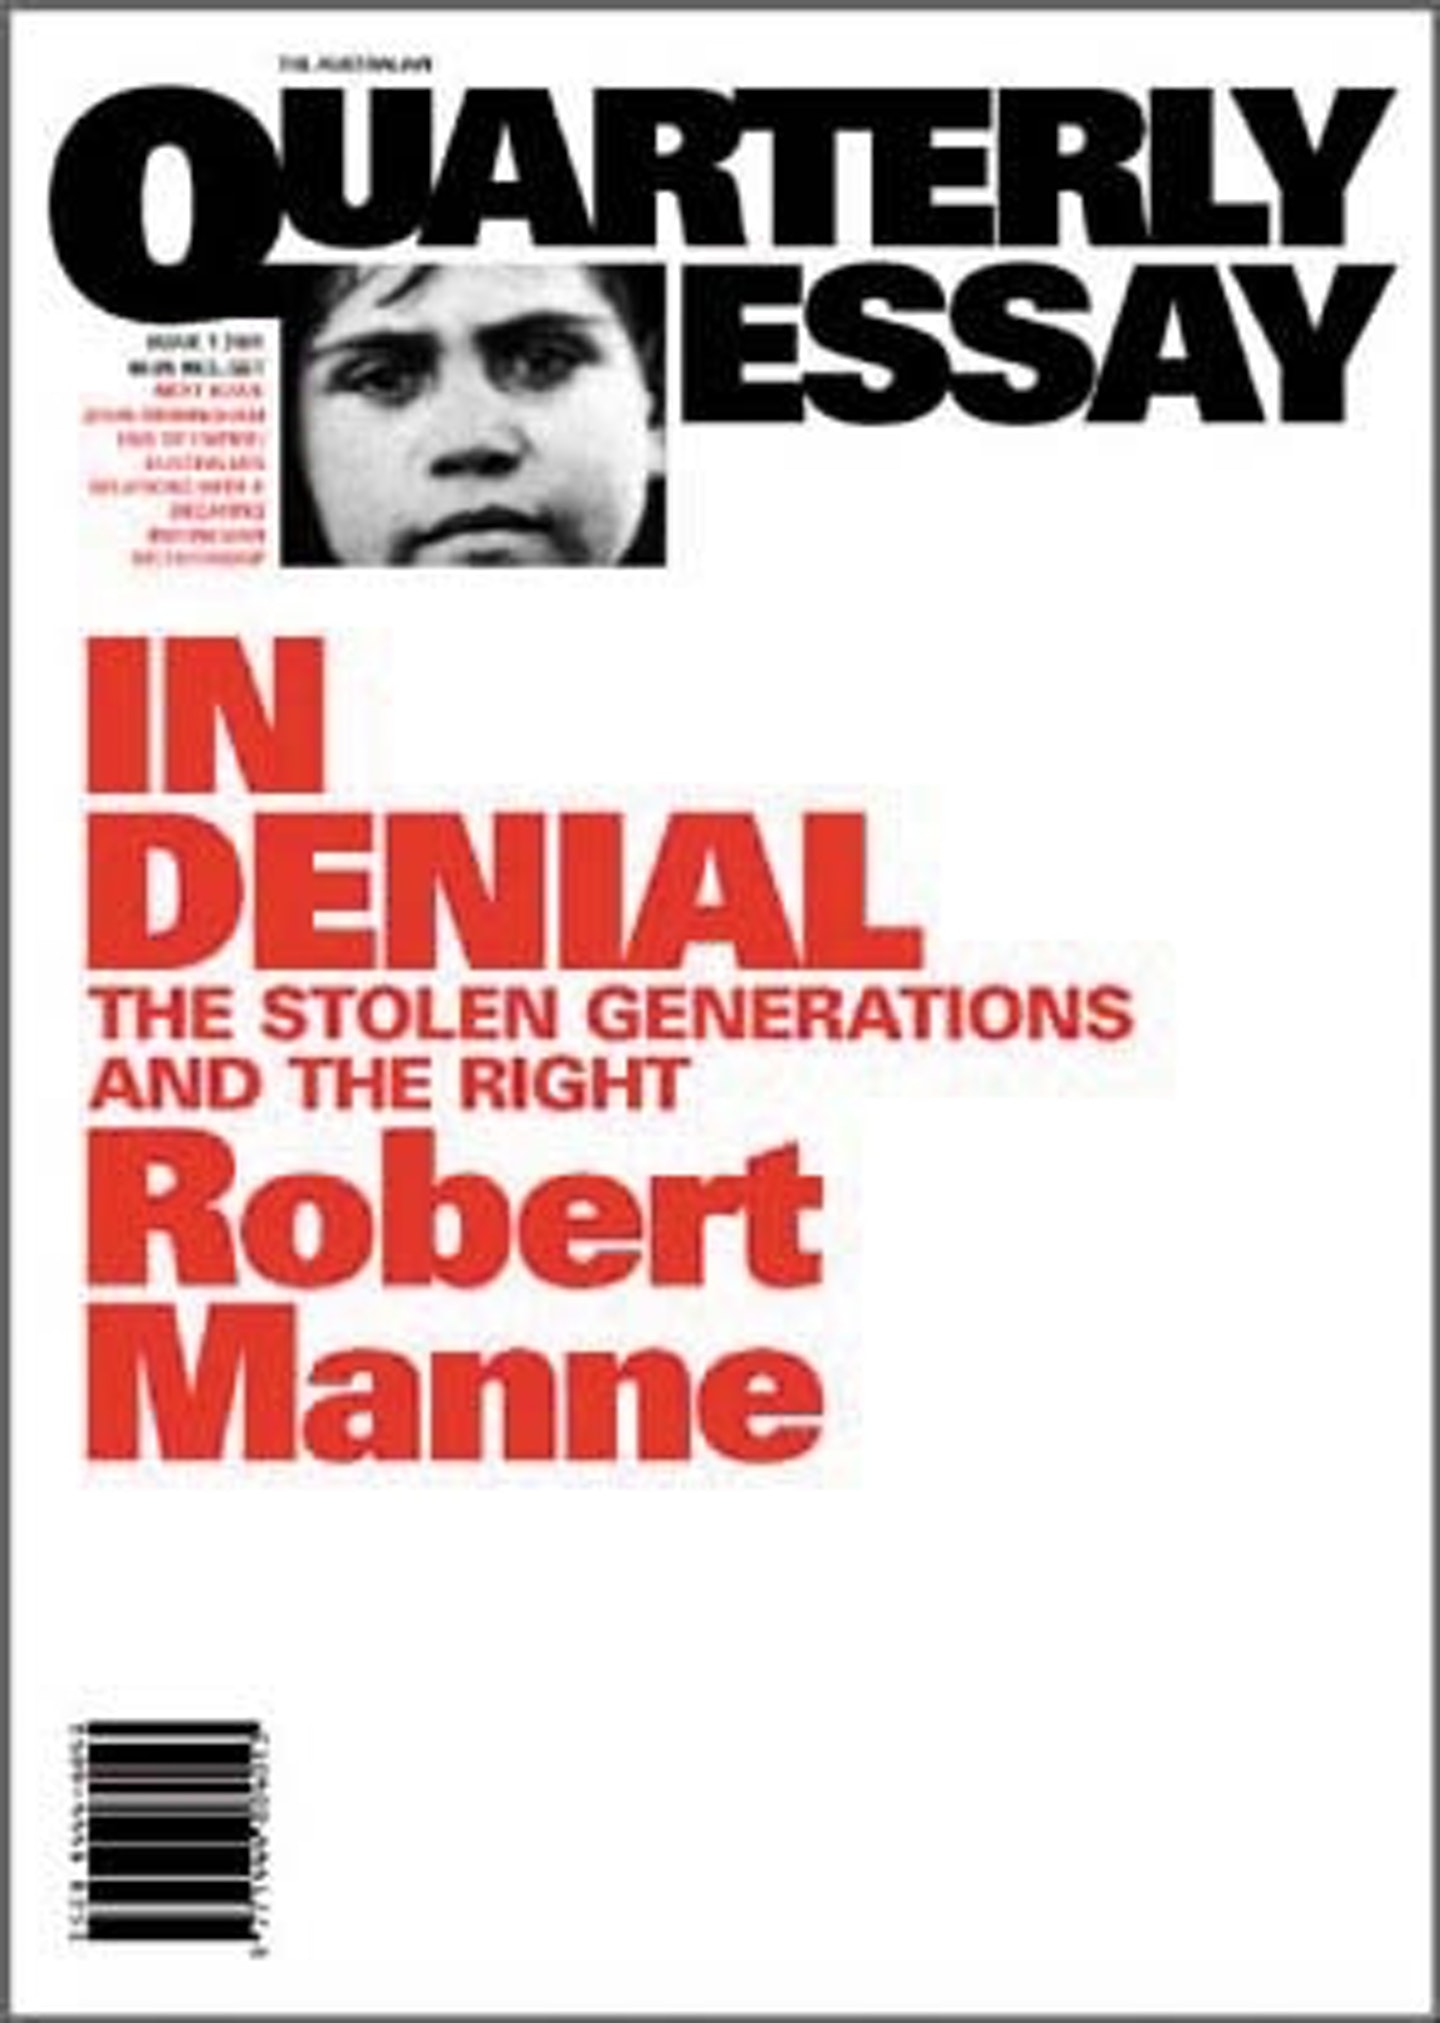 in denial the stolen generations the right quarterly essay  in denial the stolen generations the right quarterly essay 1 penguin books